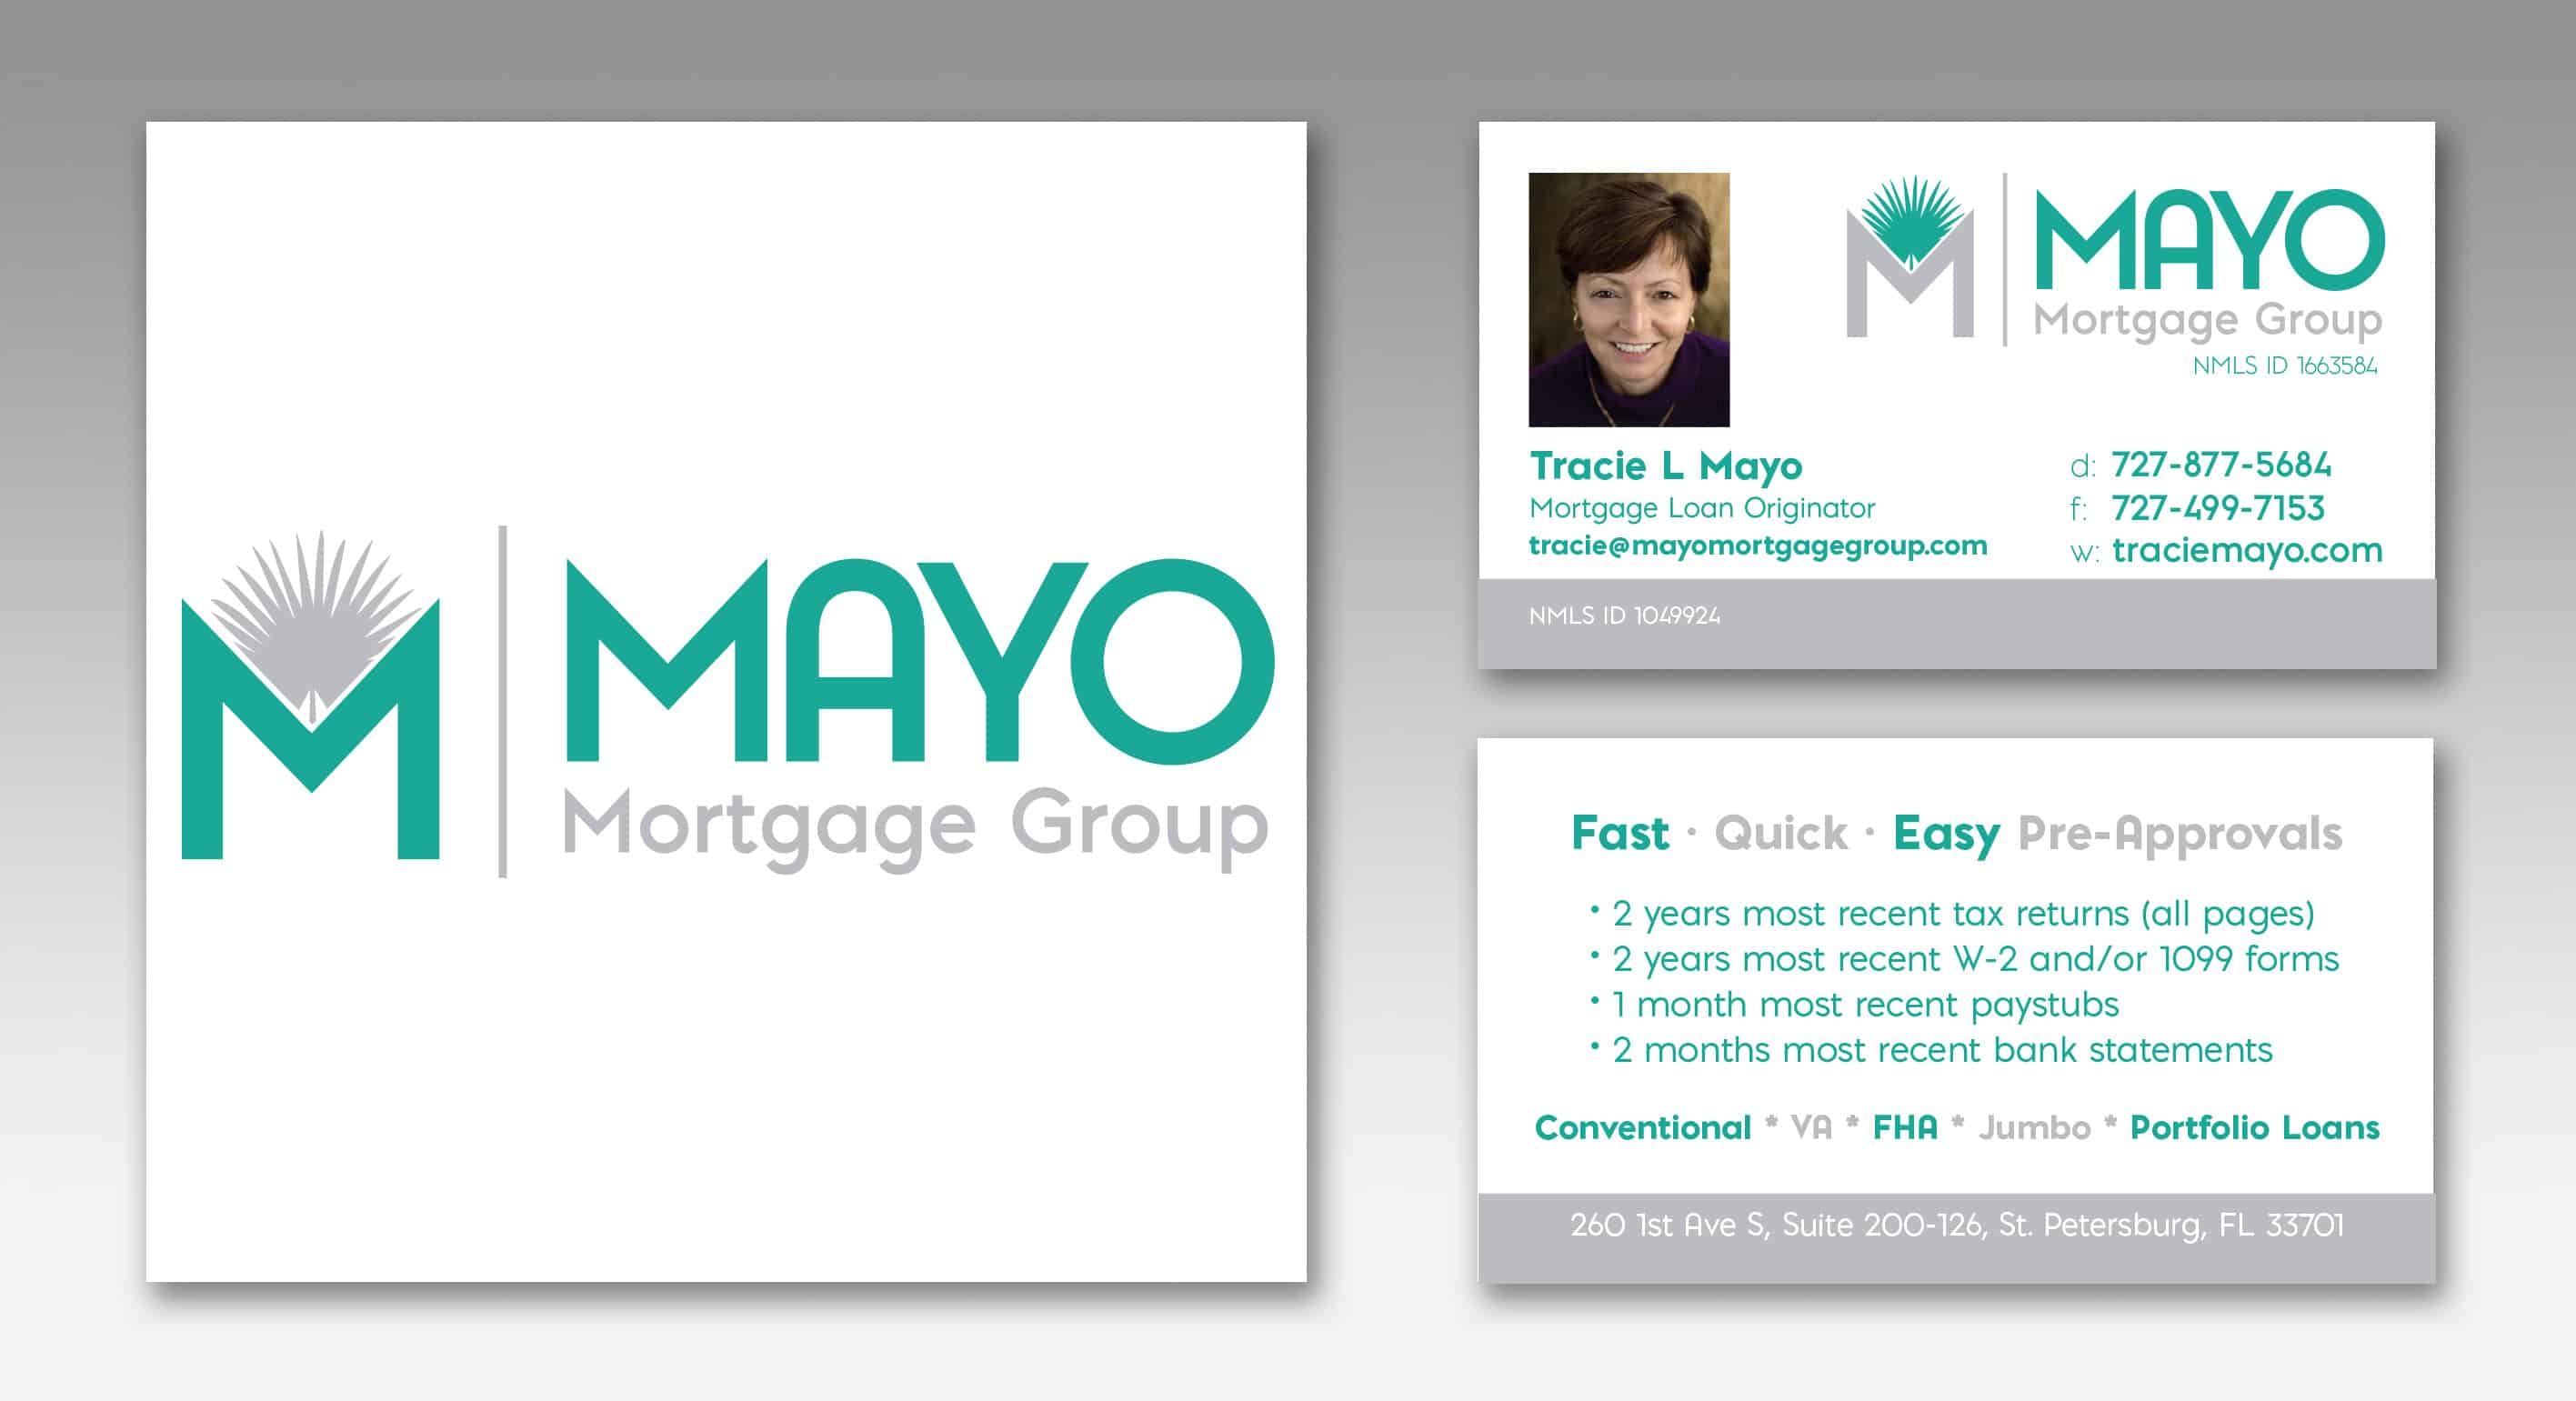 Mayo Mortgage Group